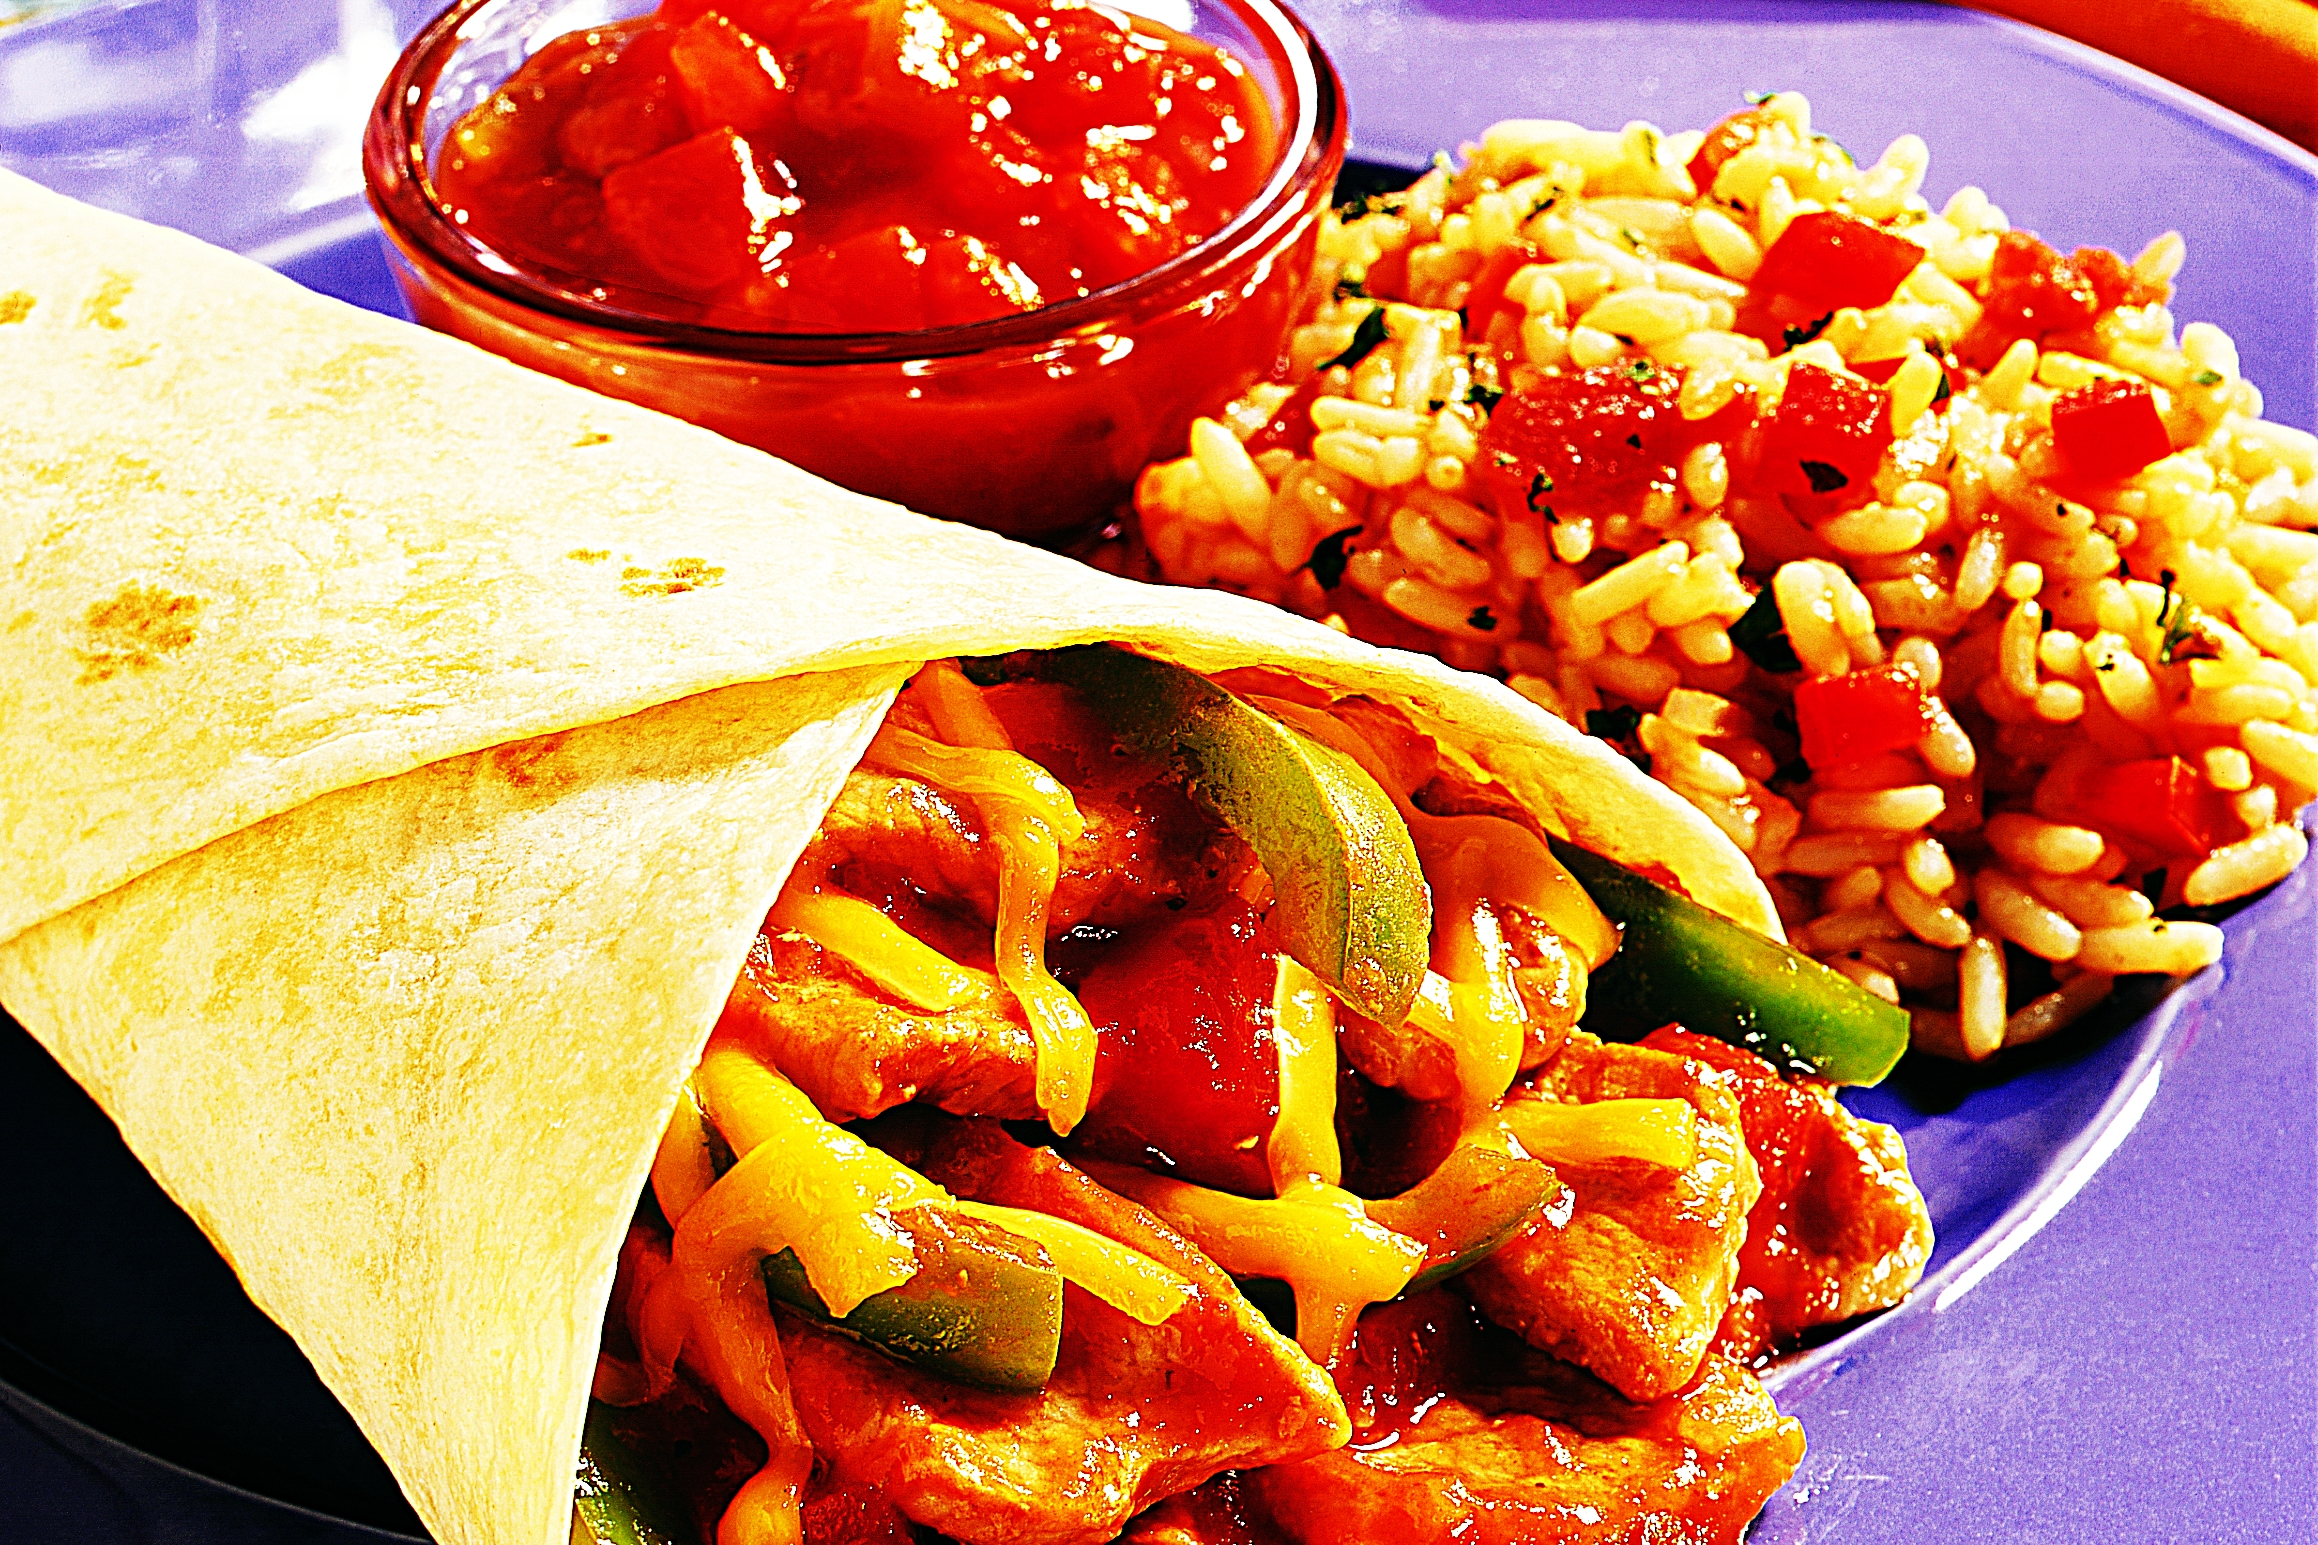 Stupid-Easy Recipe for Pork and Pepper Fajitas (#1 Top-Rated)